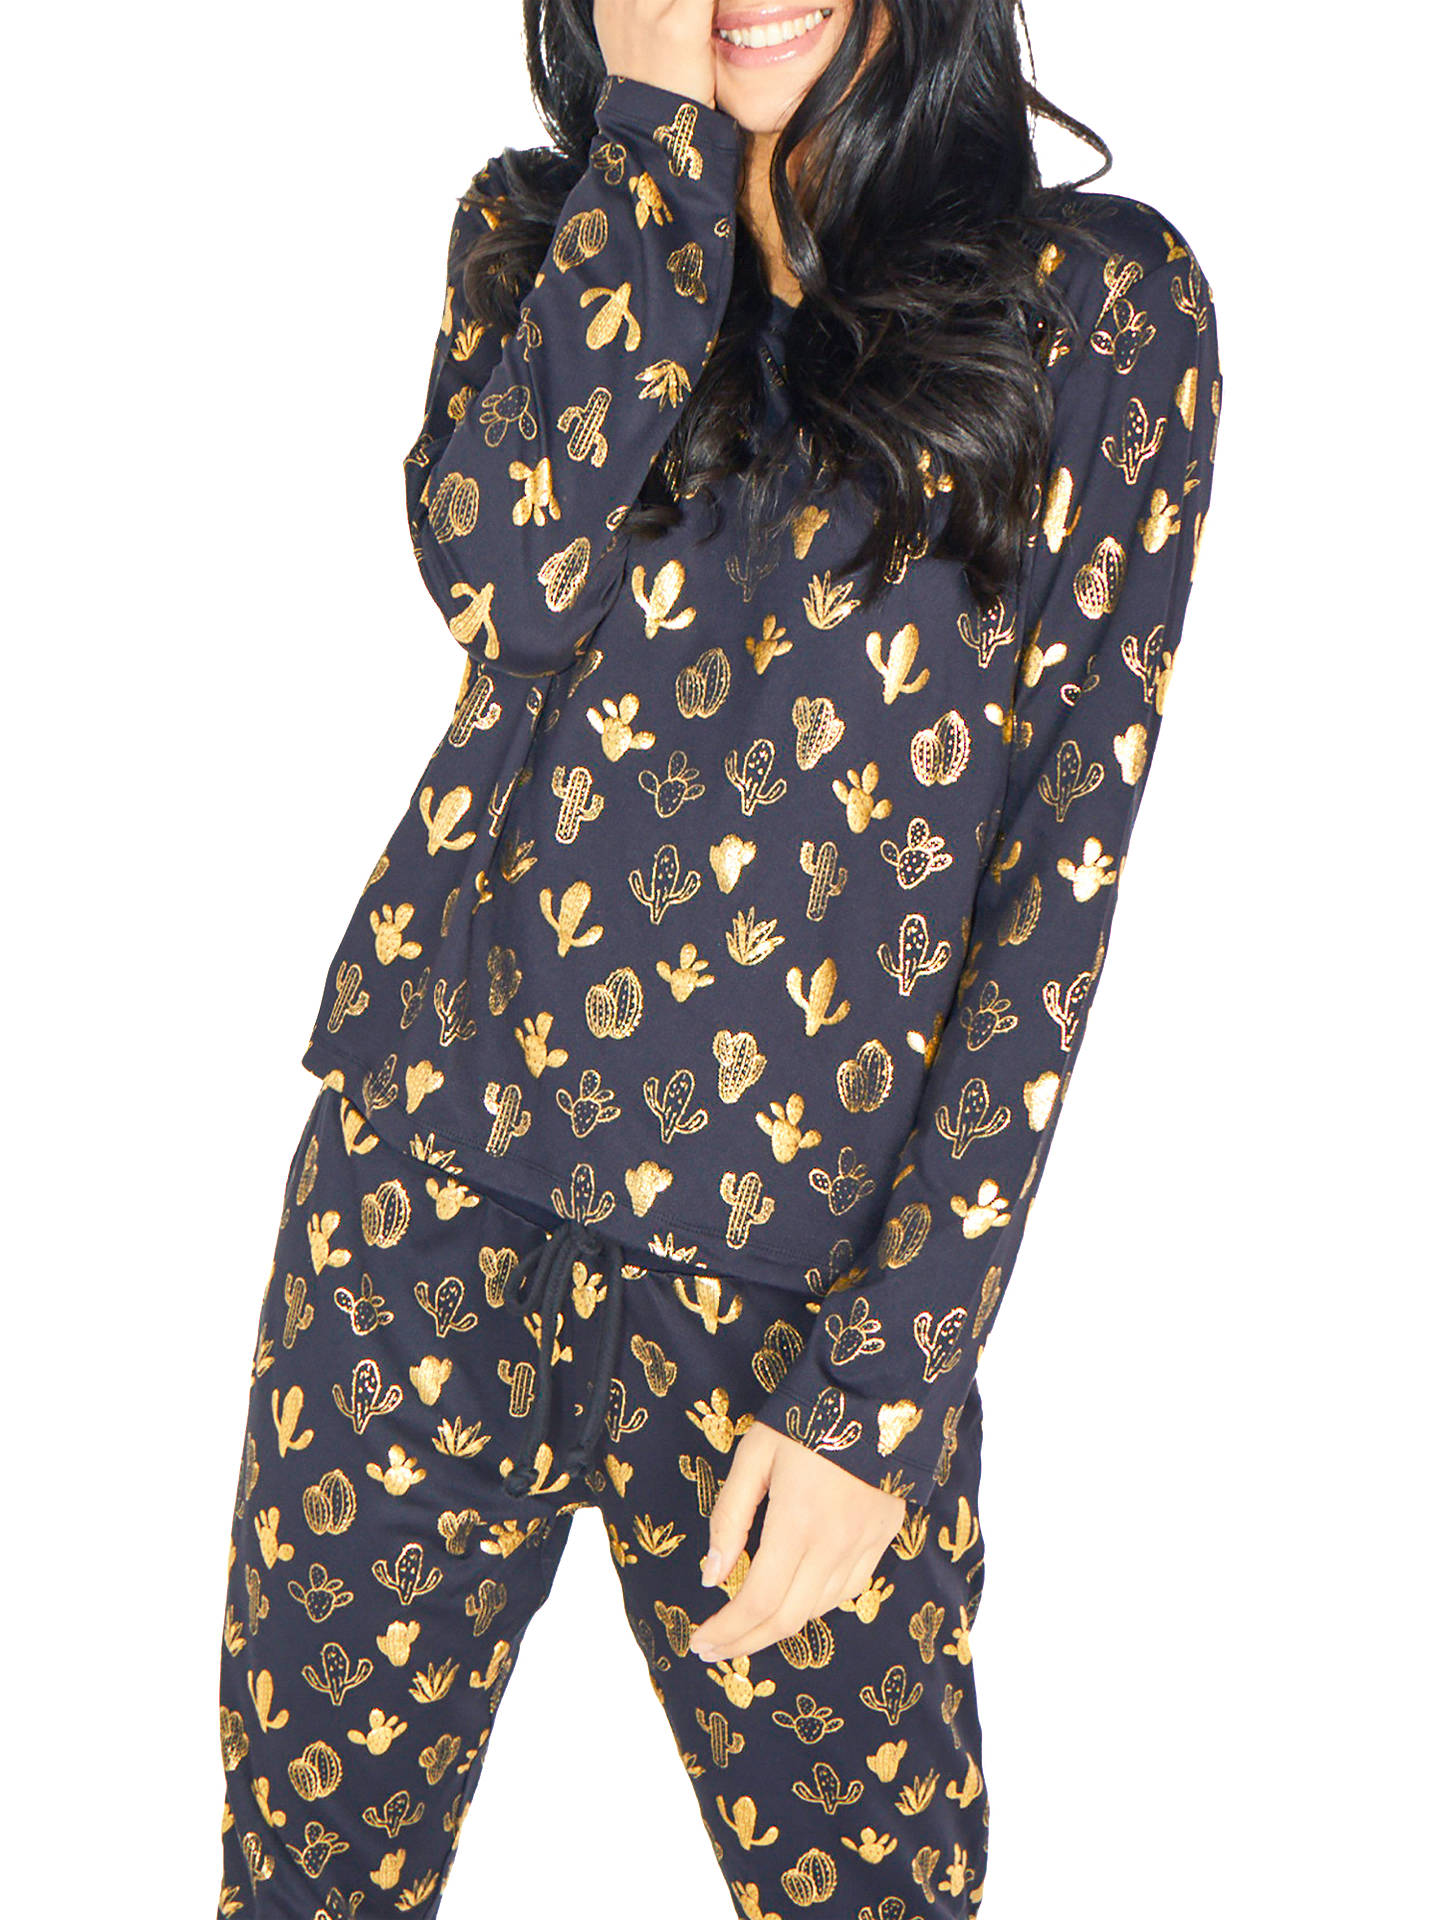 Buy Chelsea Peers Cactus Print Jersey Pyjama Set, Navy/Gold, M Online at johnlewis.com